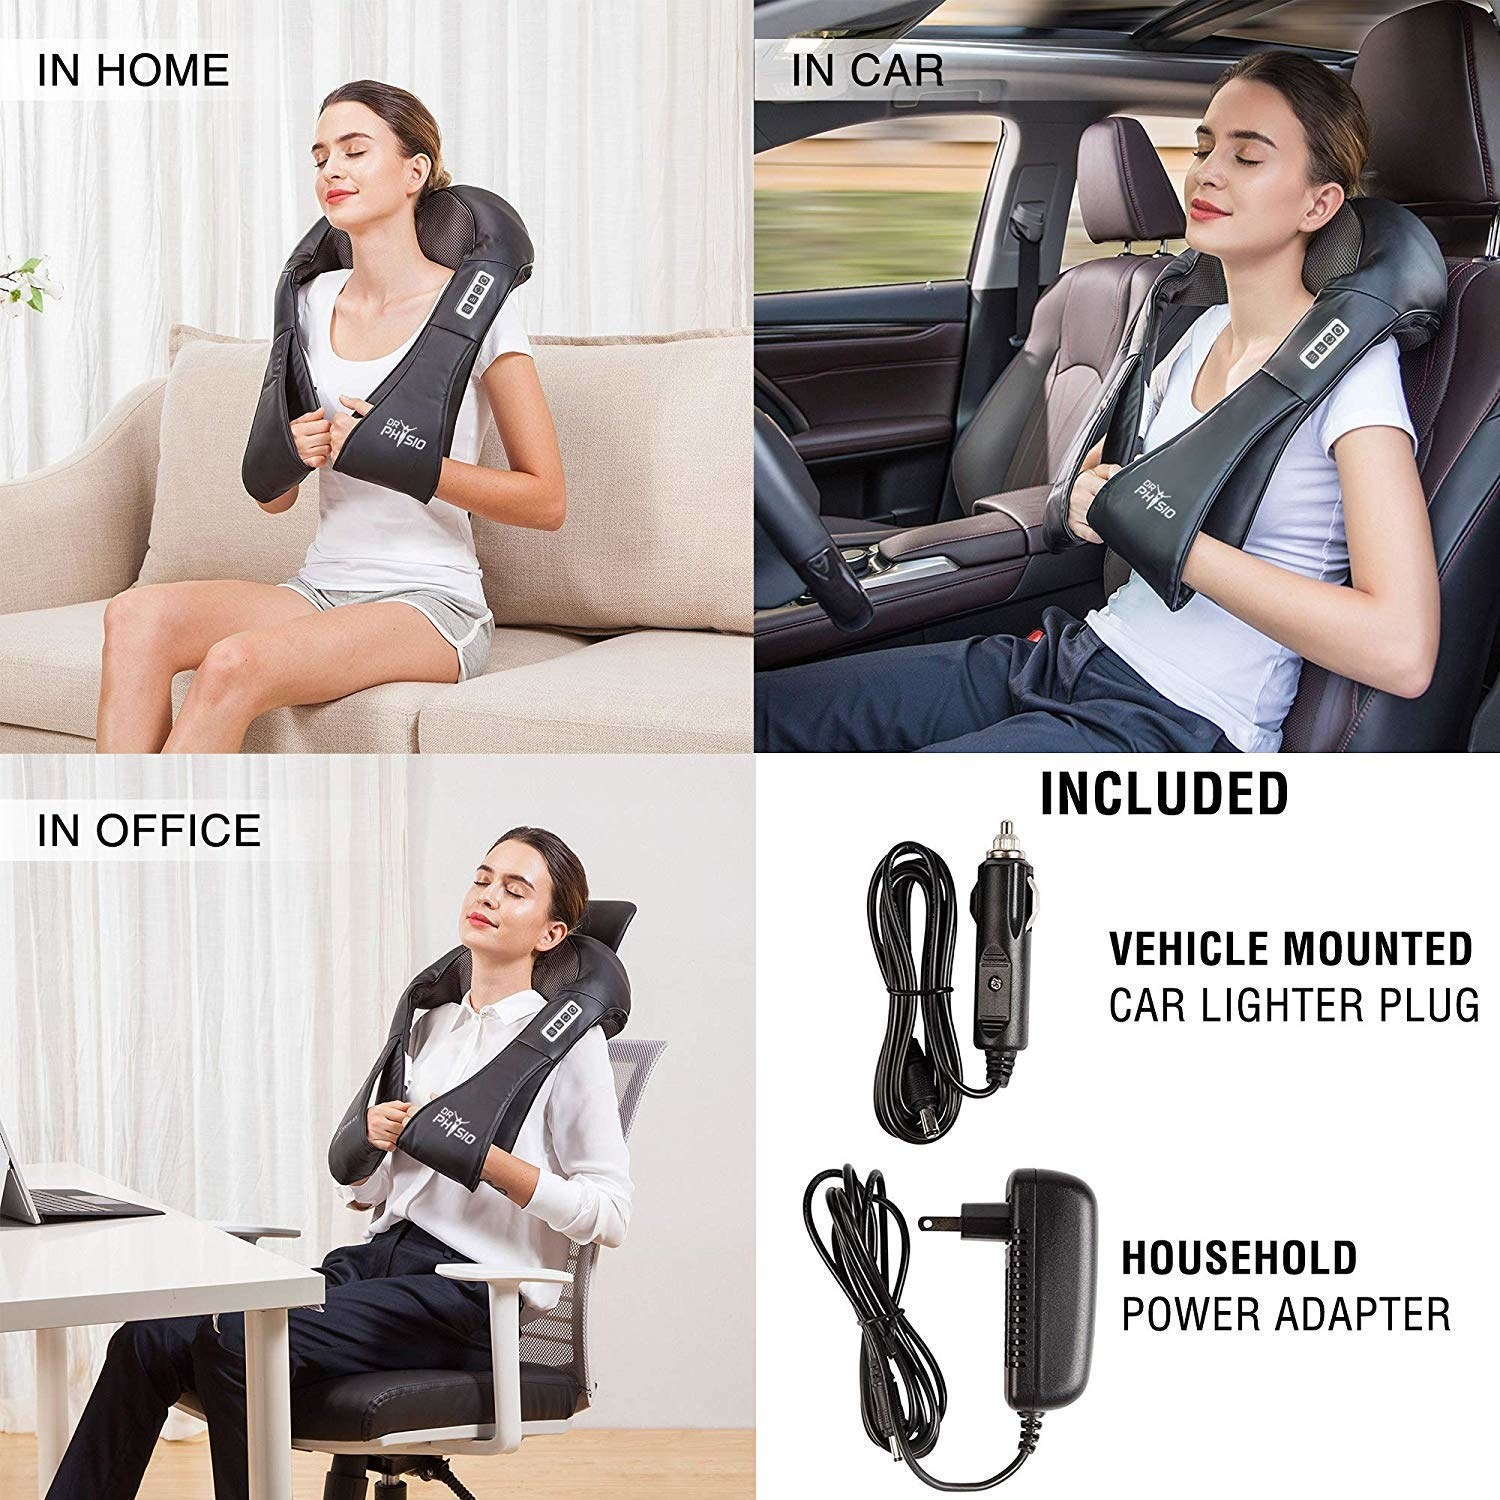 A collage showing various use cases of the massager, such as at home, in the car, and at the office. Also adds that car lighter plug and power adapter are included.